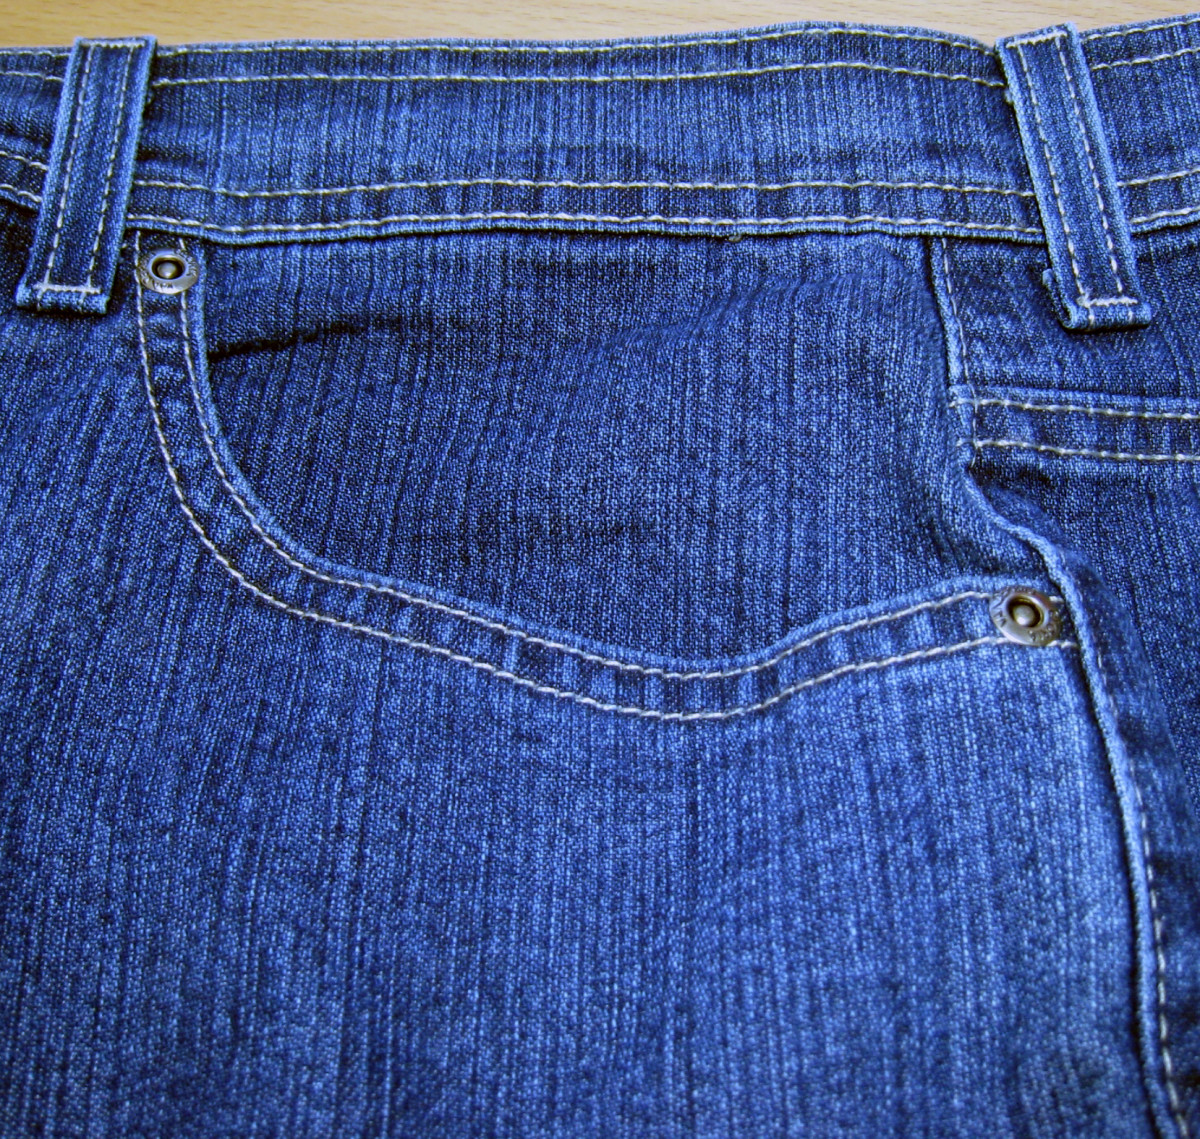 Jeans with riveted pocket